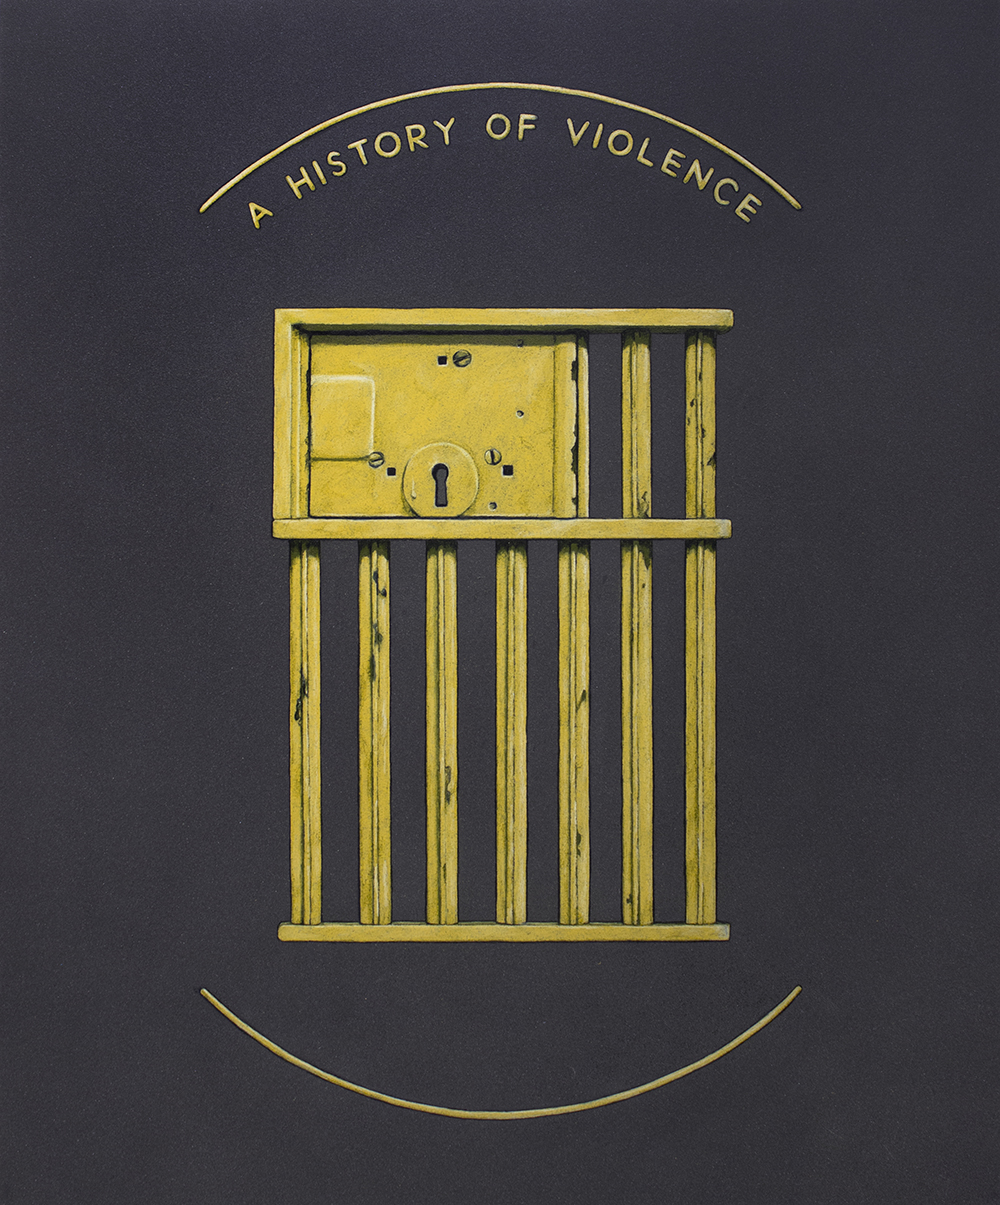 Copy of A History of Violence